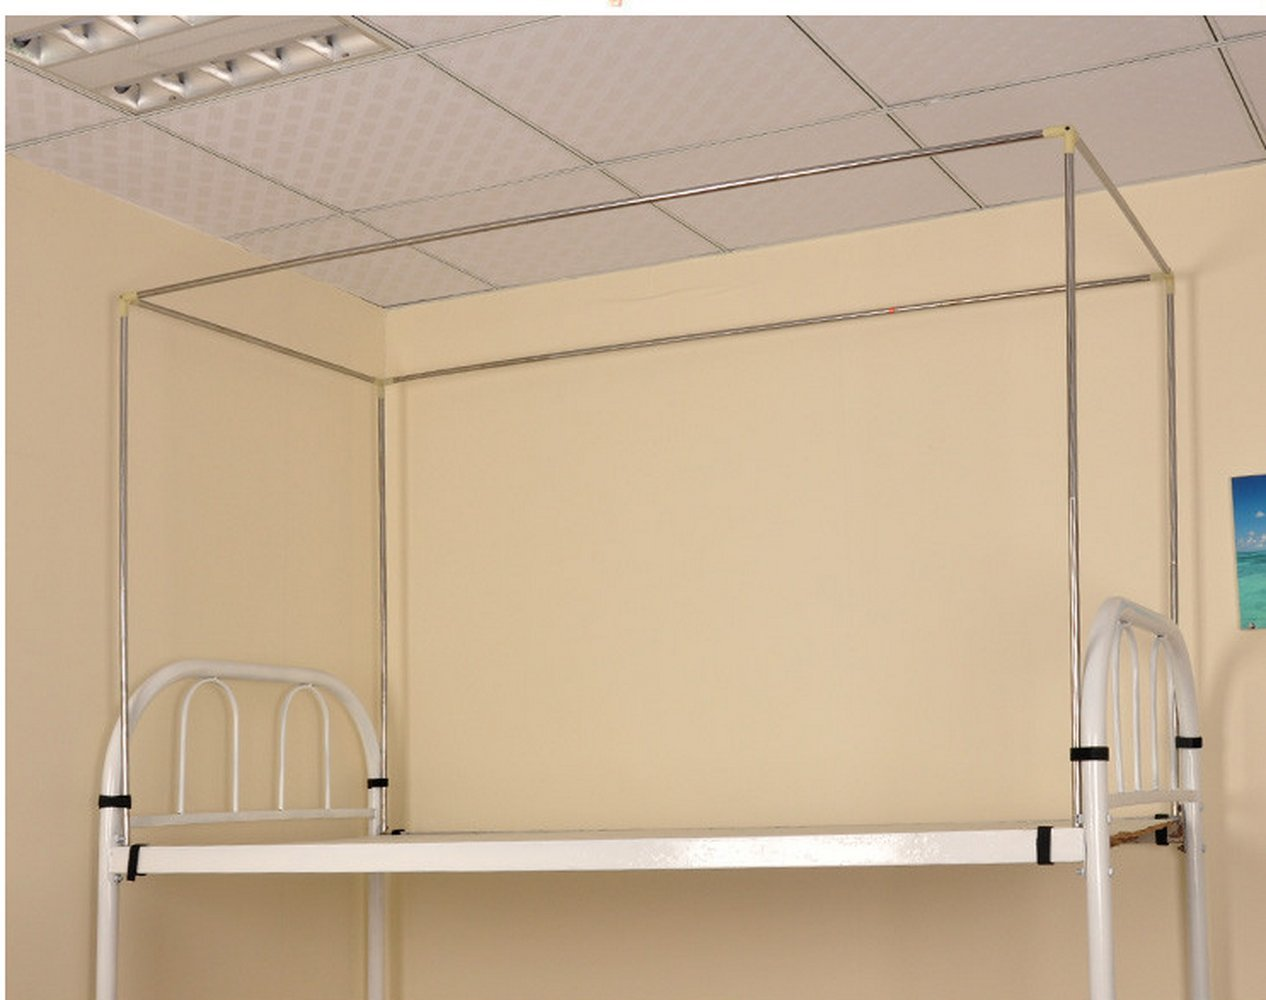 KingKara Students' Dormitory Stainless Steel Canopy Bed Frame